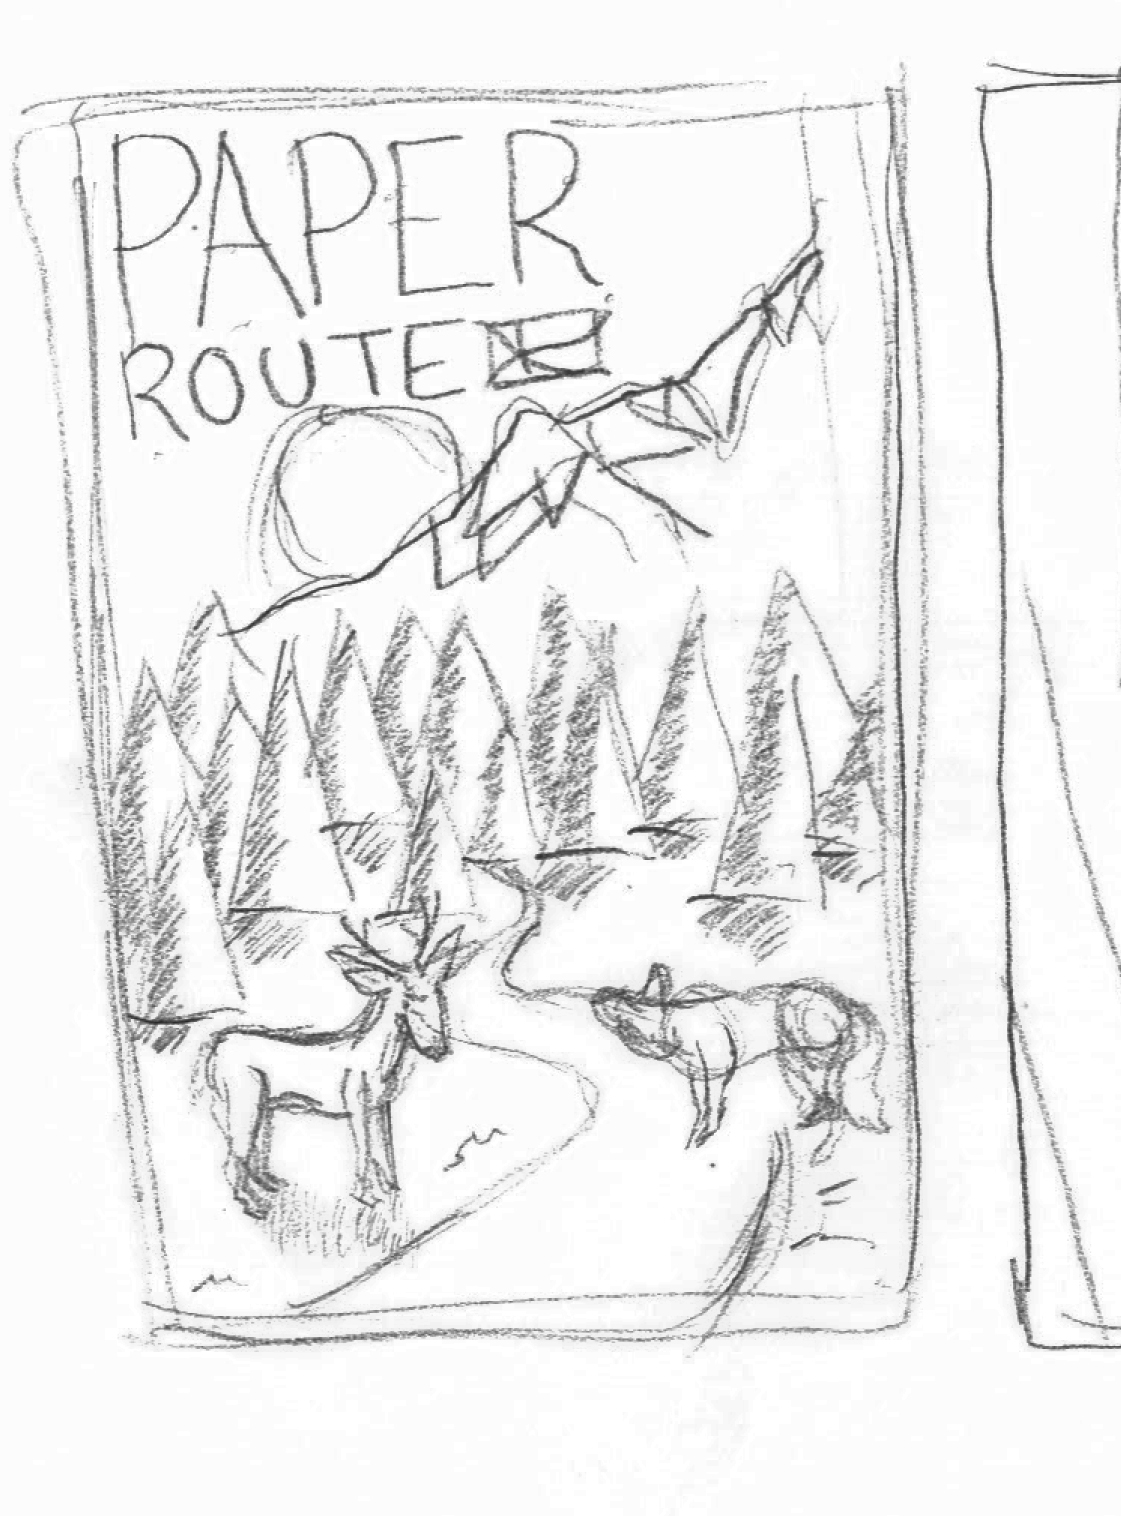 Paper Route - image 13 - student project